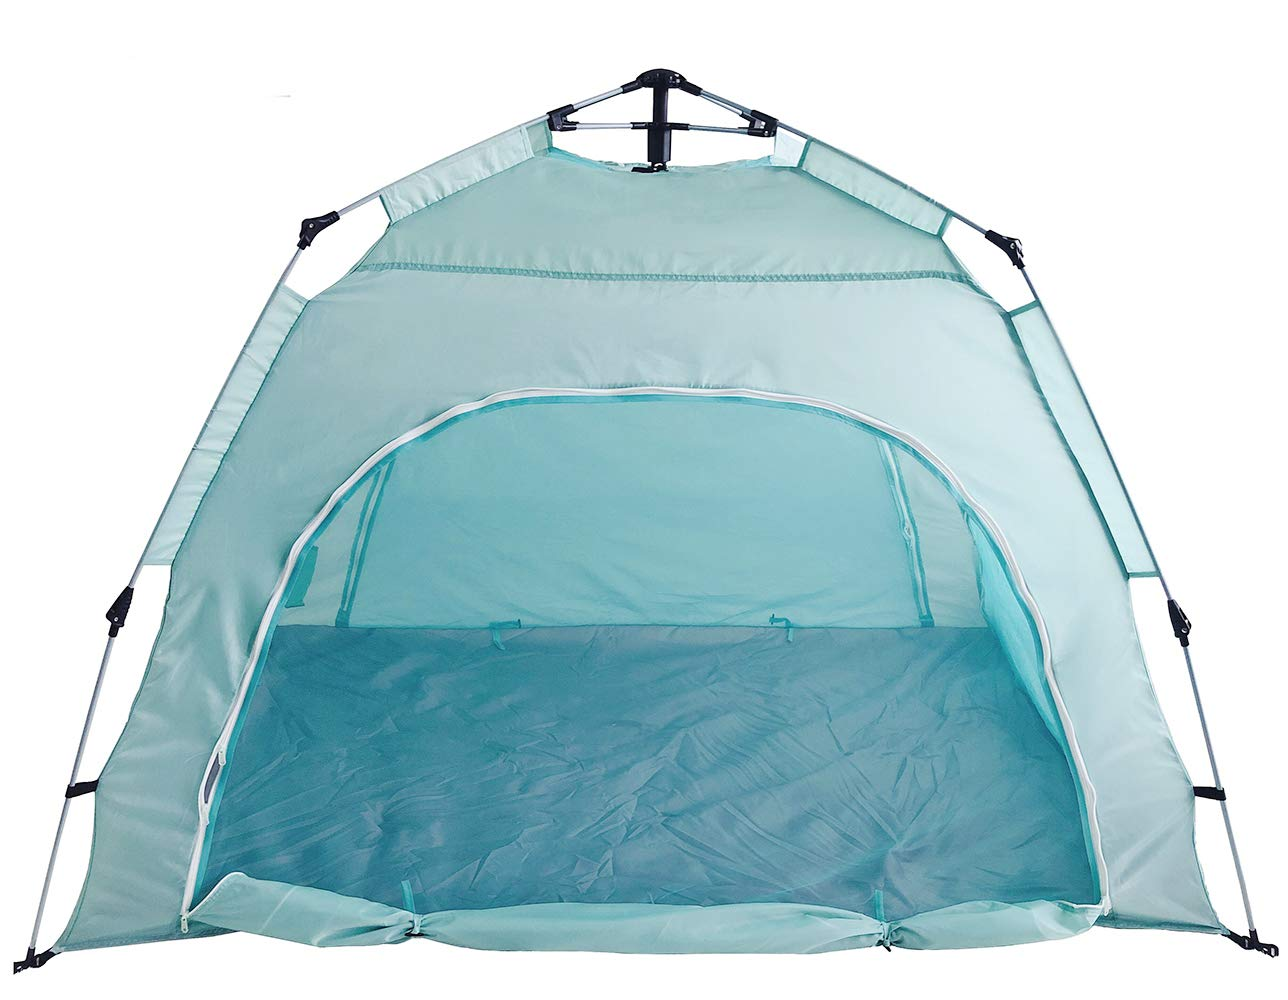 DANCHEL Indoor Automatic Pop-up Privacy Warm Tent for Bed (Blue, Queen Size)